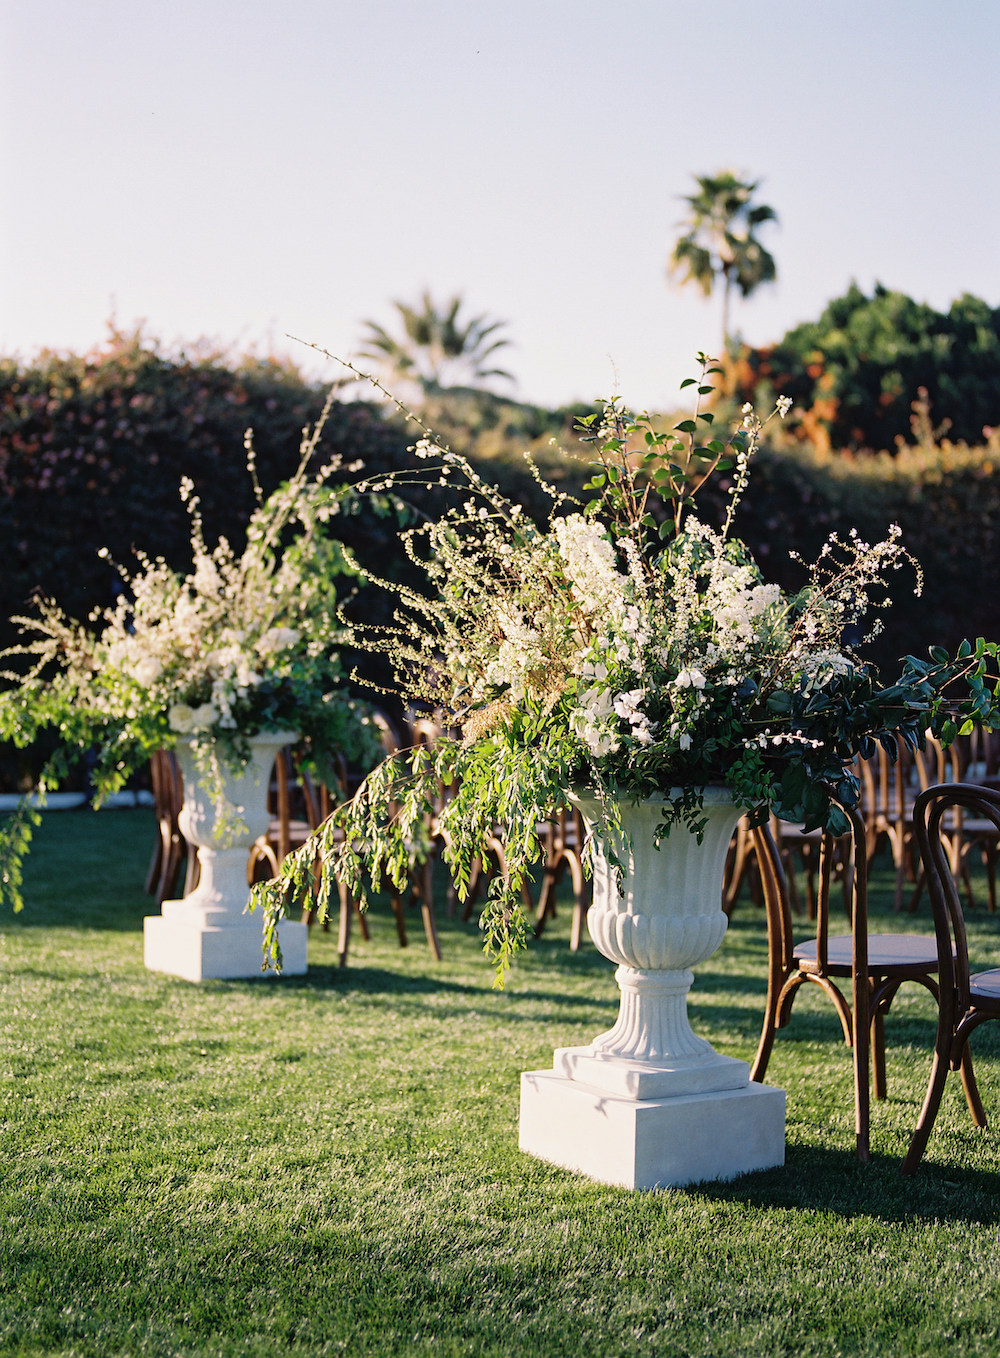 ivey trevor wedding large urns with overflowing flowers as outdoor ceremony decor